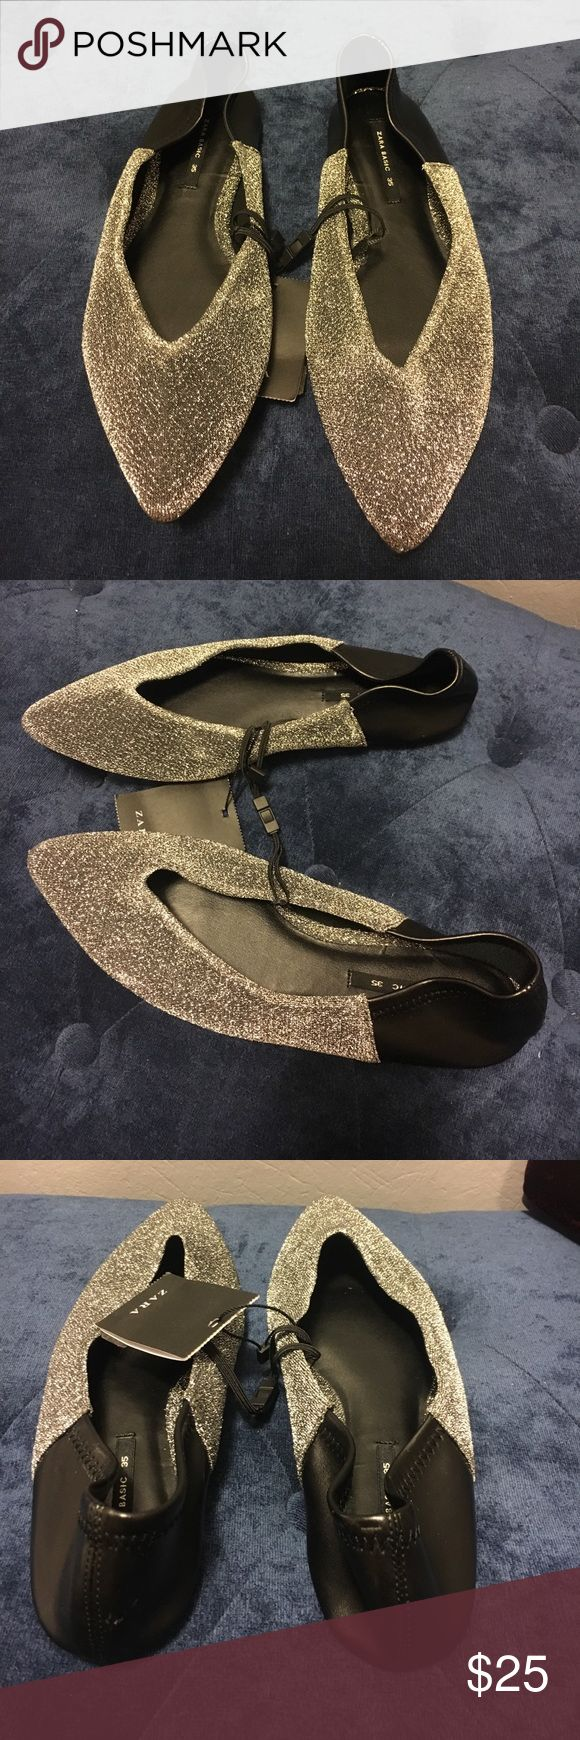 *NWT* Zara Contrasting Silver Ballet Flats Flat, silver, babouche style in combination of black and silver. Fold over heel, V shape instep and pointed to. Perfect compliment to any outfit 😍 Zara Shoes Flats & Loafers